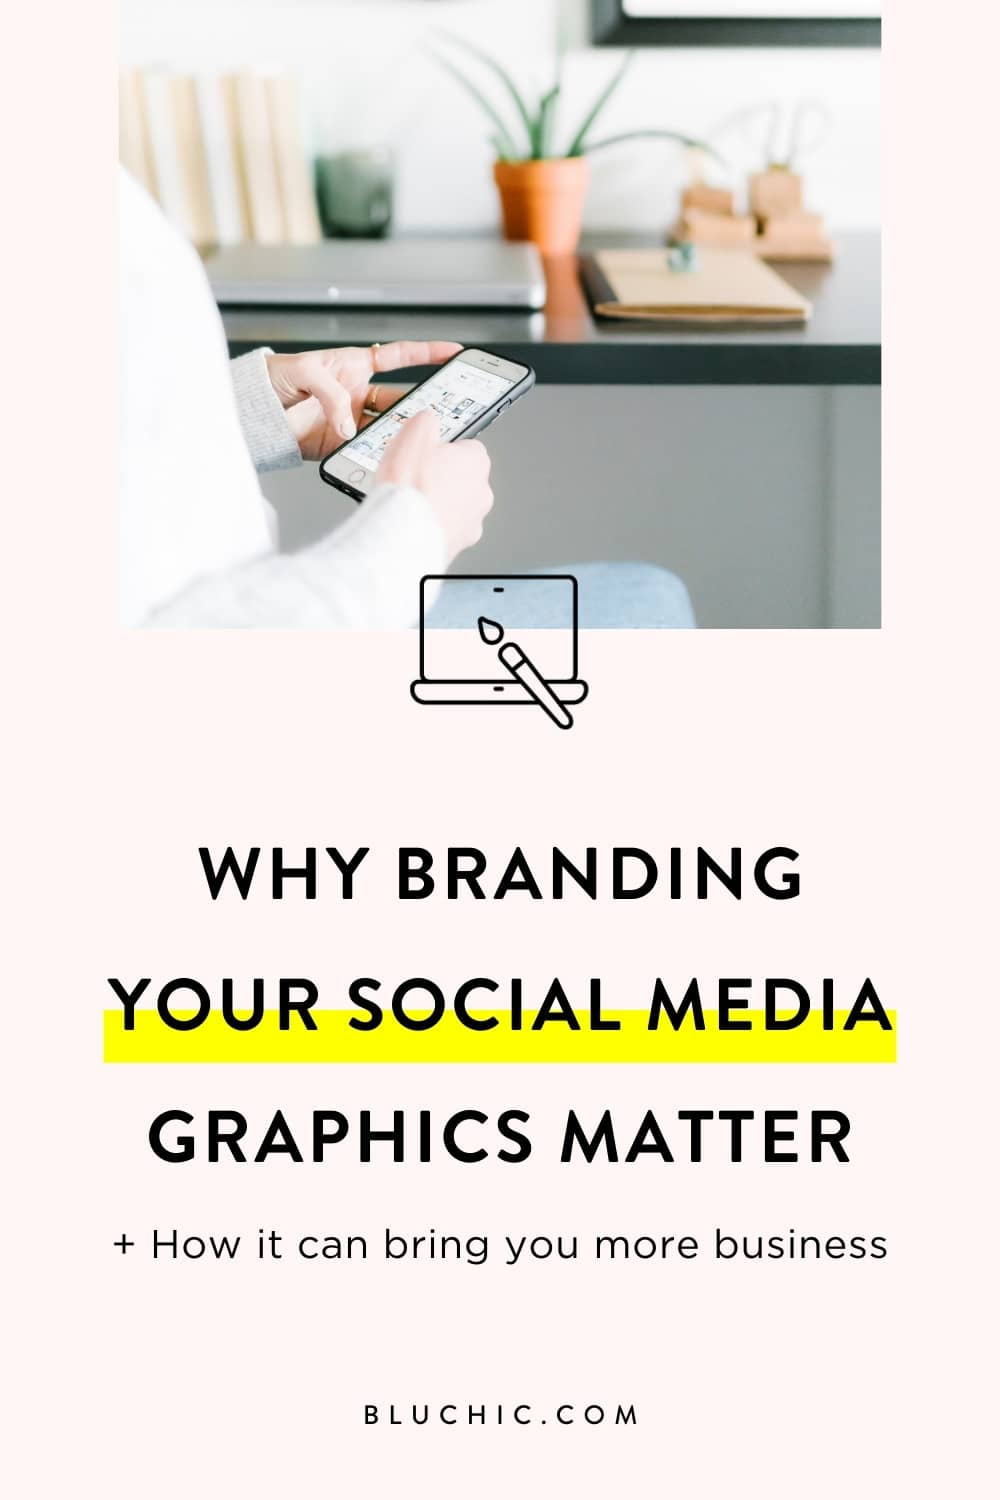 Learn why branding your #socialmedia graphics matters & how it can bring you even more business!